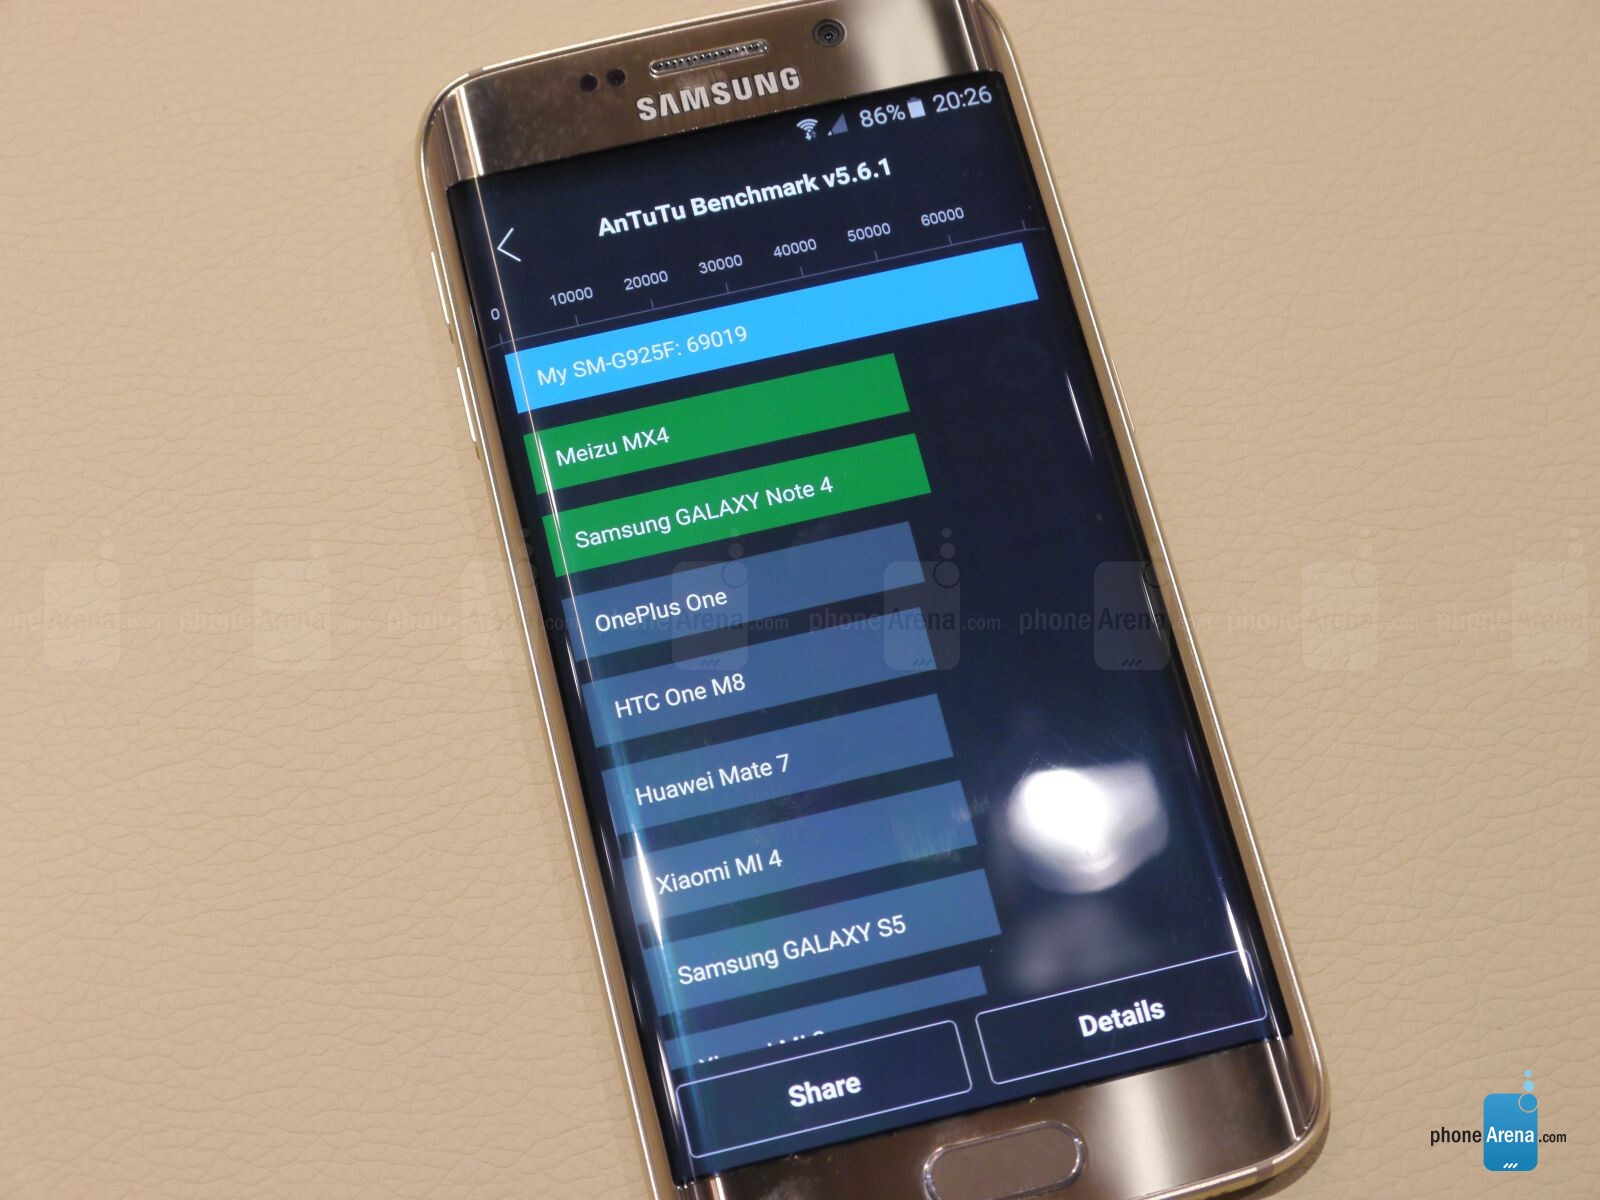 People are selling samsung galaxy s6 clones - Samsung Galaxy S6 Edge Preliminary Benchmark Results